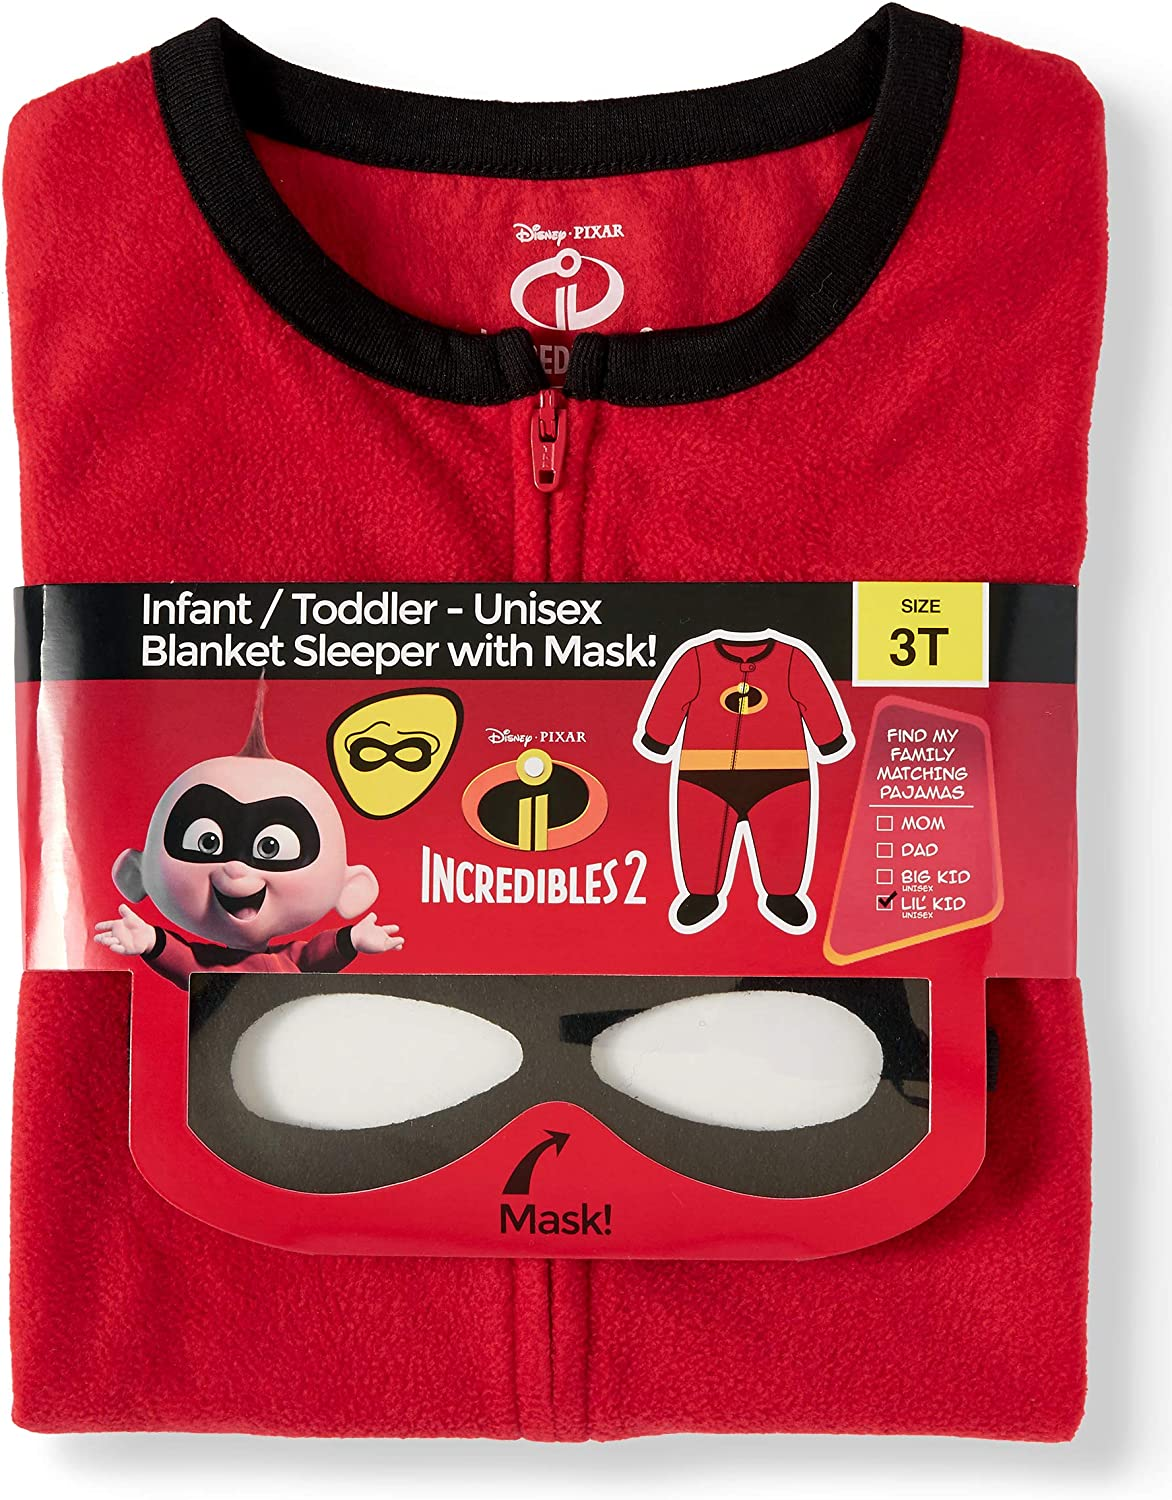 Incredibles Infant Toddler Blanket Sleeper With Mask Size 4T New Free Shipping